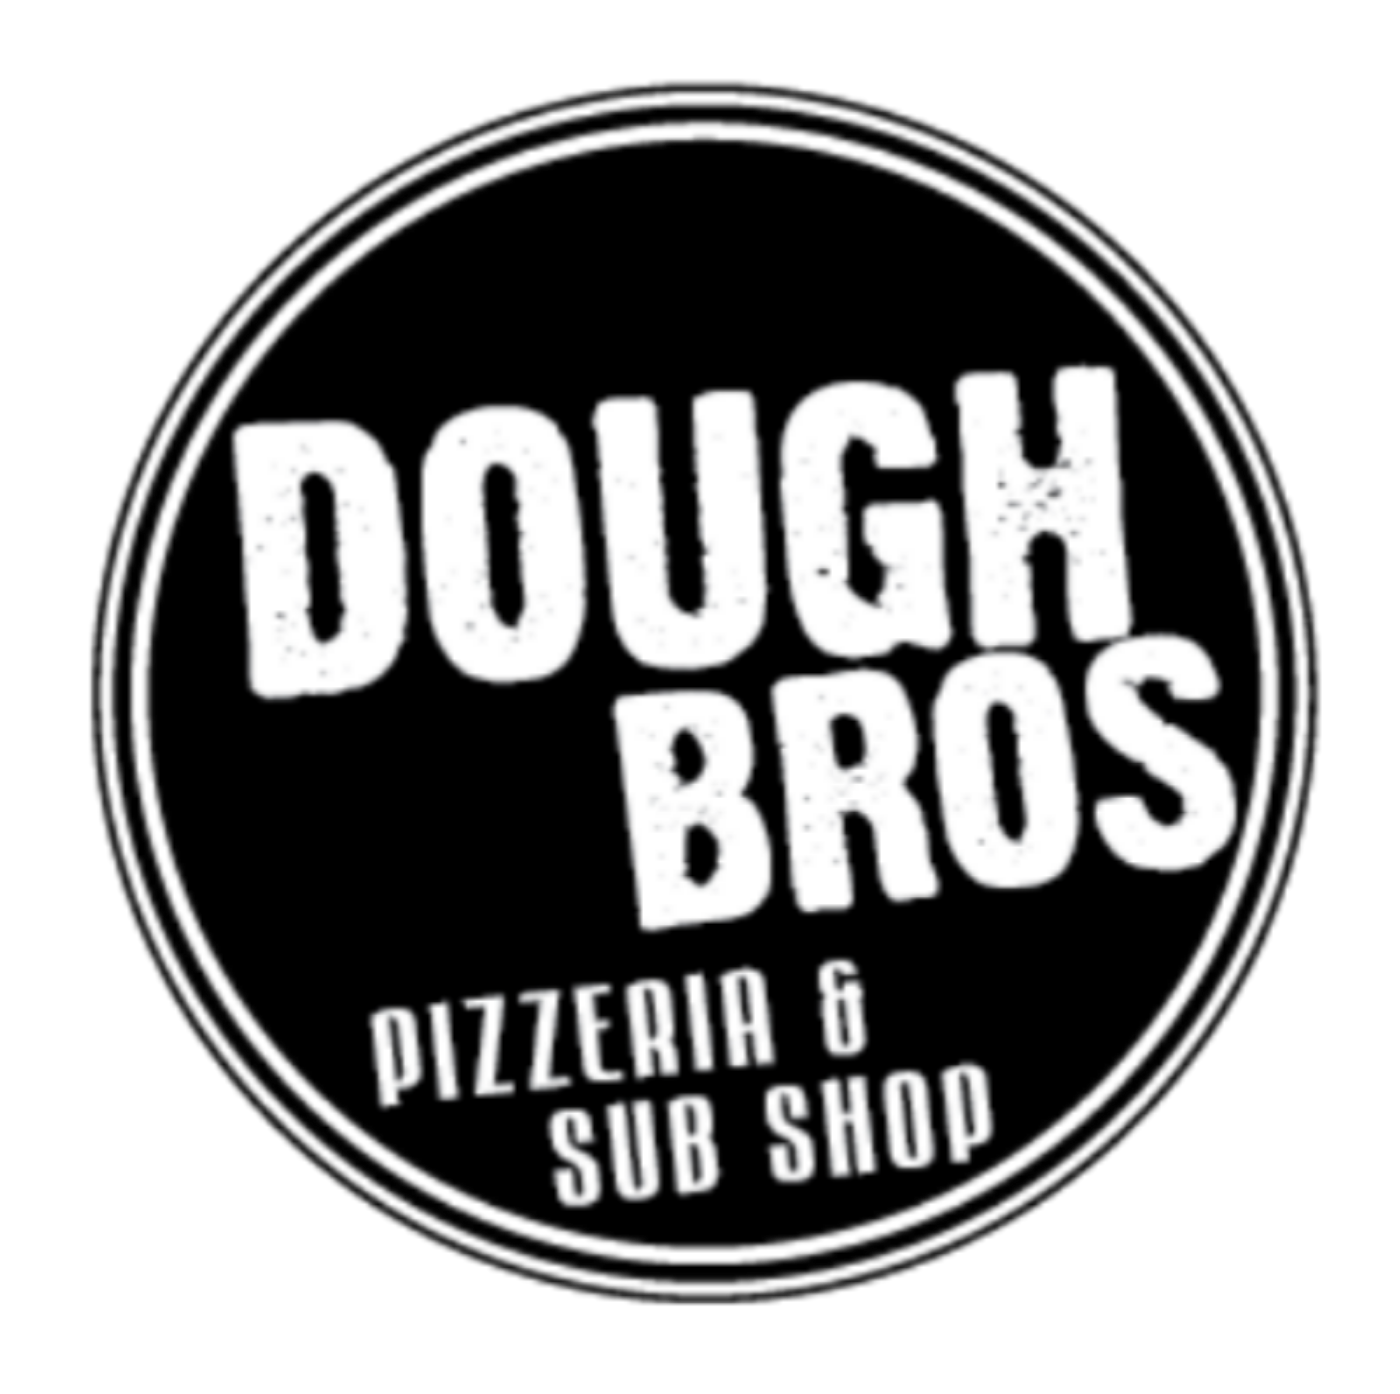 Dough Bros Pizzeria & Sub Shop